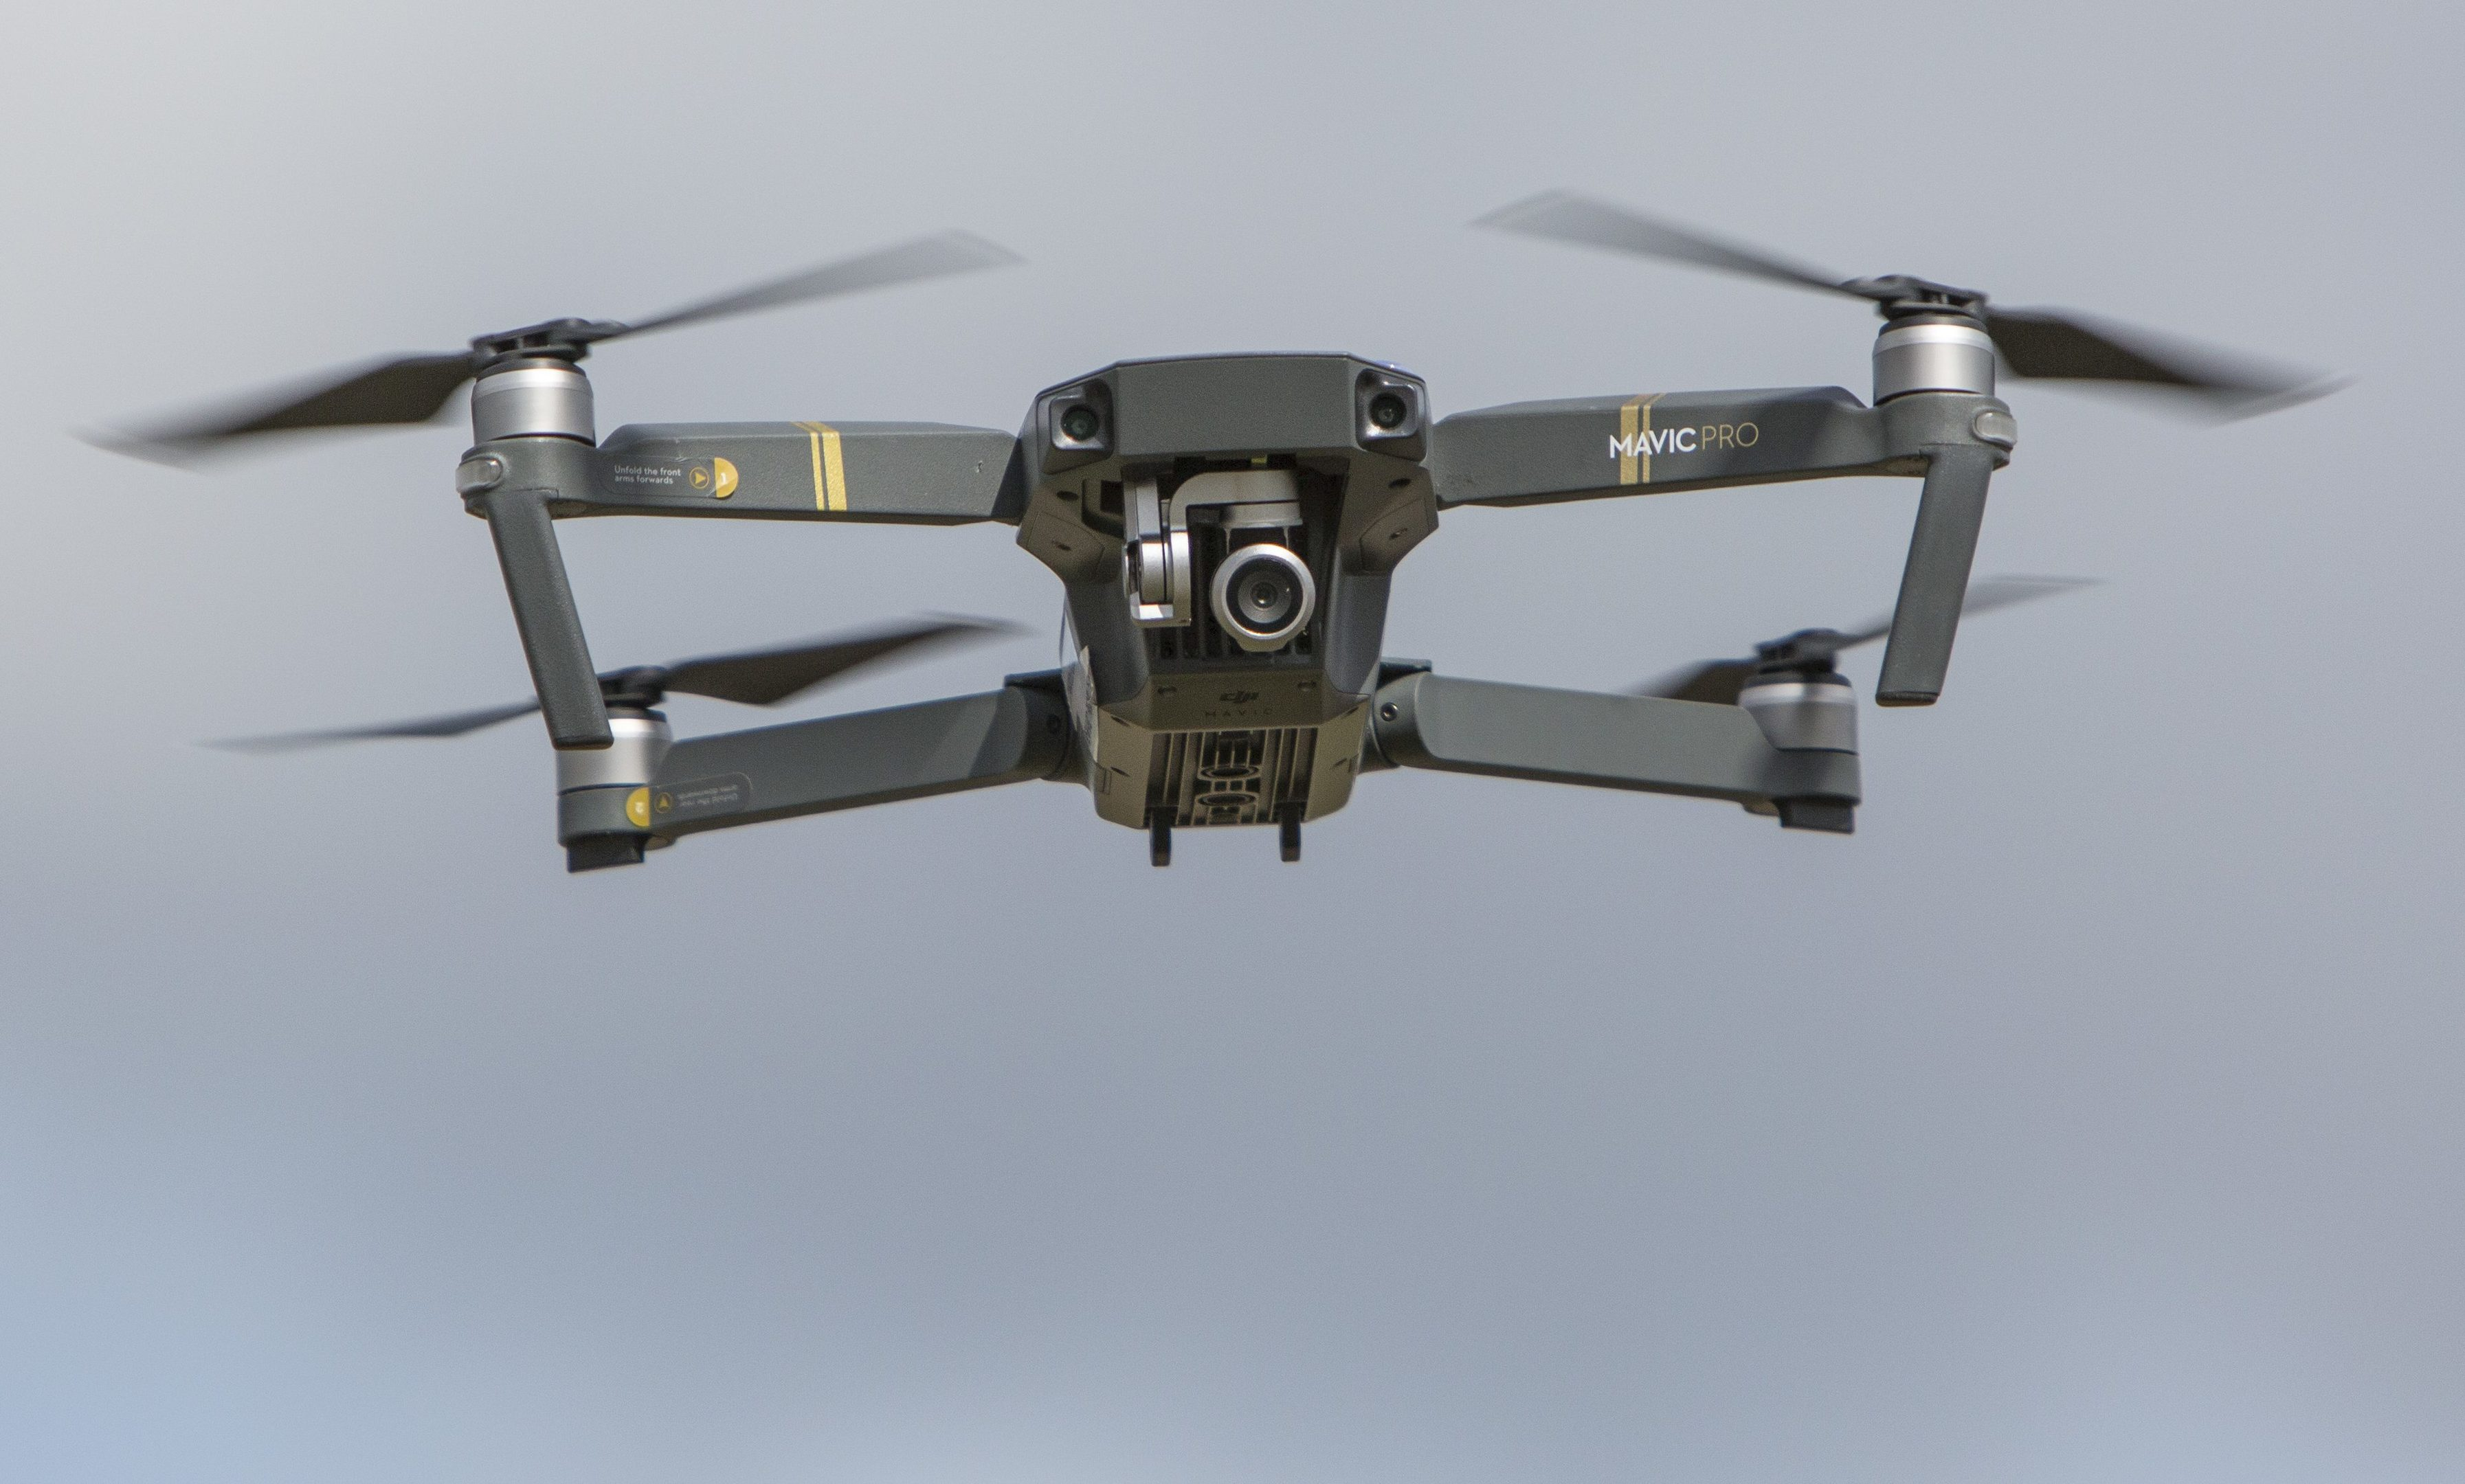 The versatility of drones is presenting prison chiefs with a new problem.